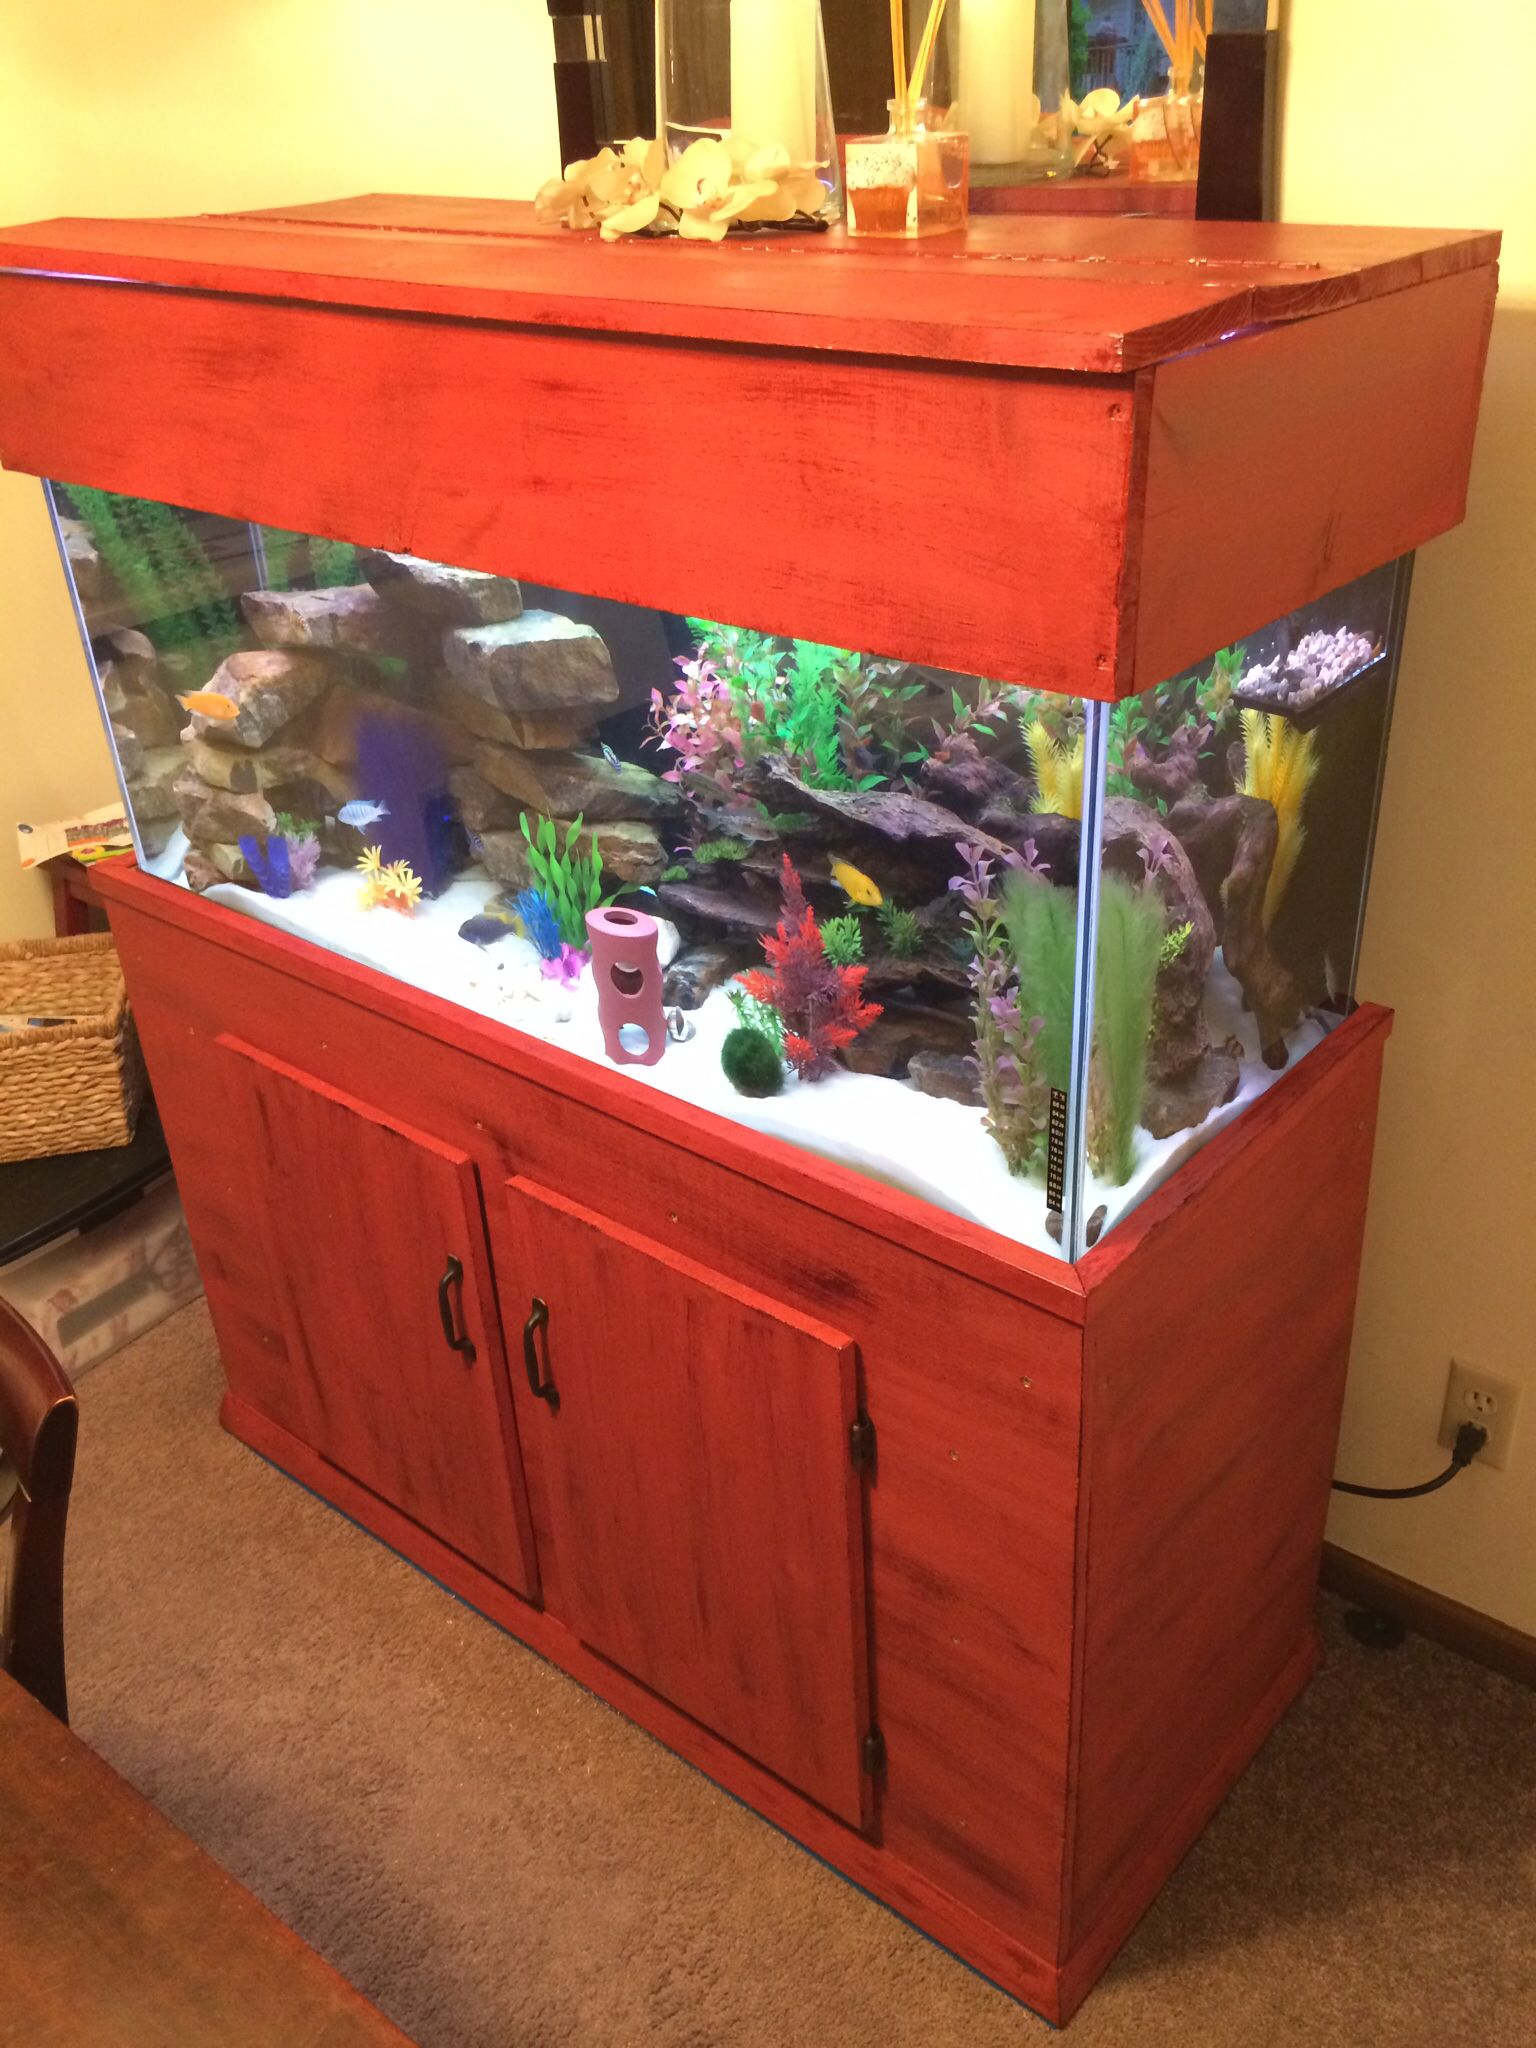 Plywood 75 gallon fish tank stand painted red and distressed. | Yep ...